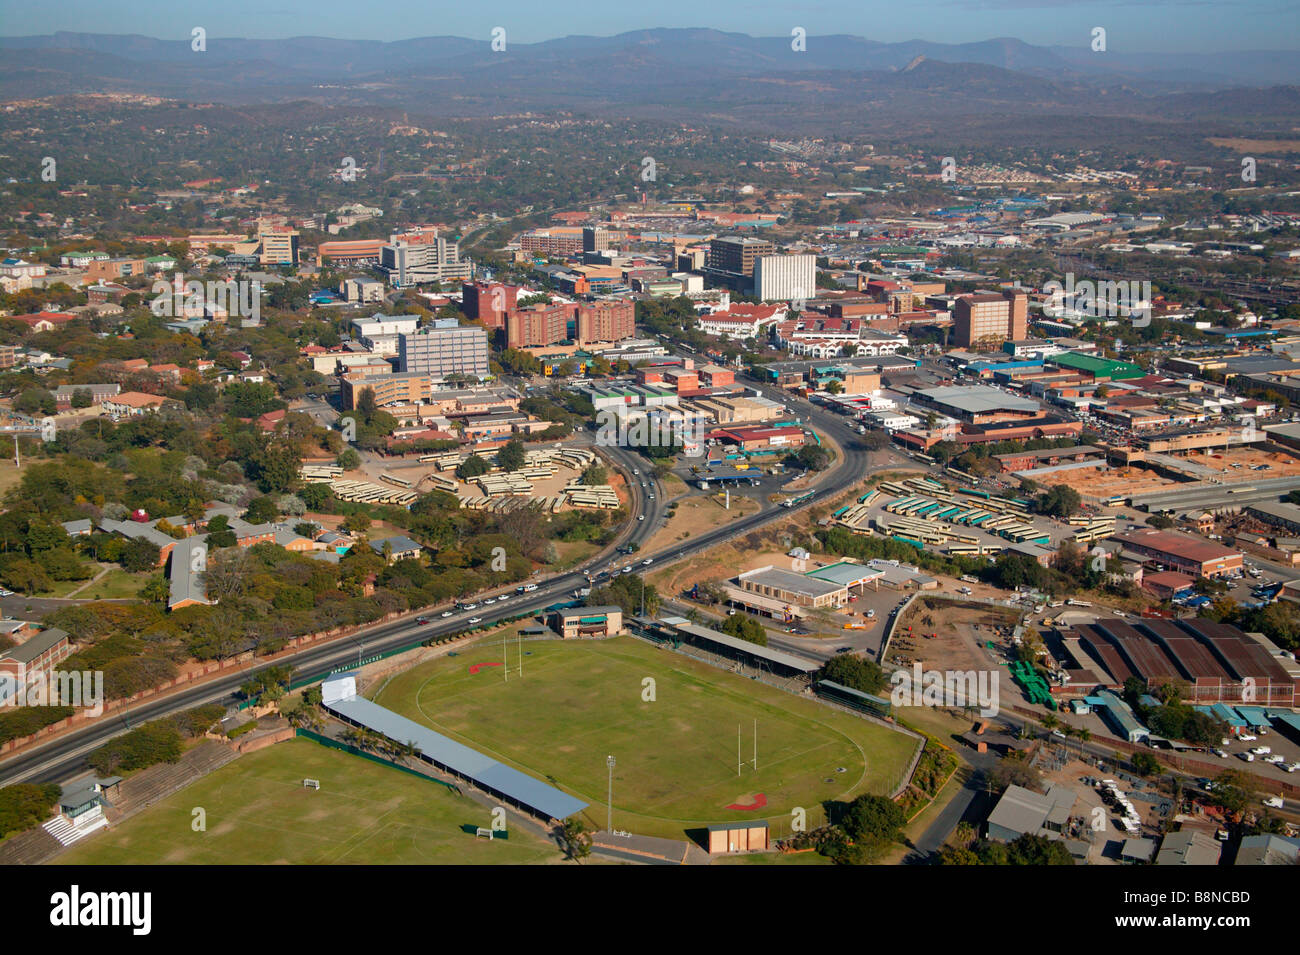 Aerial view of Nelspruit town and surrounding areas - Stock Image